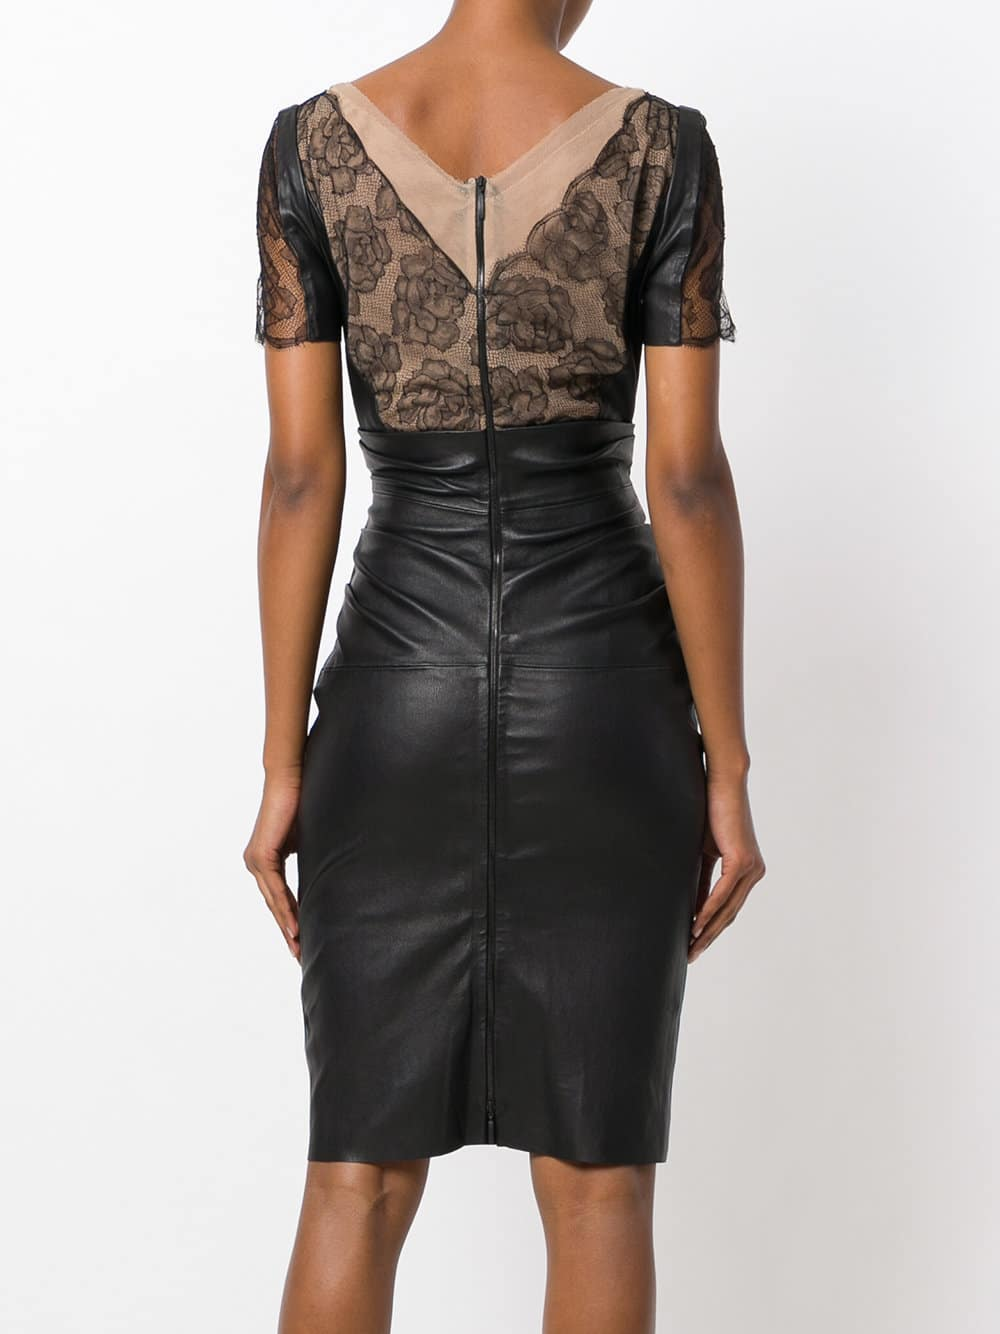 Talbot Runhof Ed Lace Bodice Black Dress